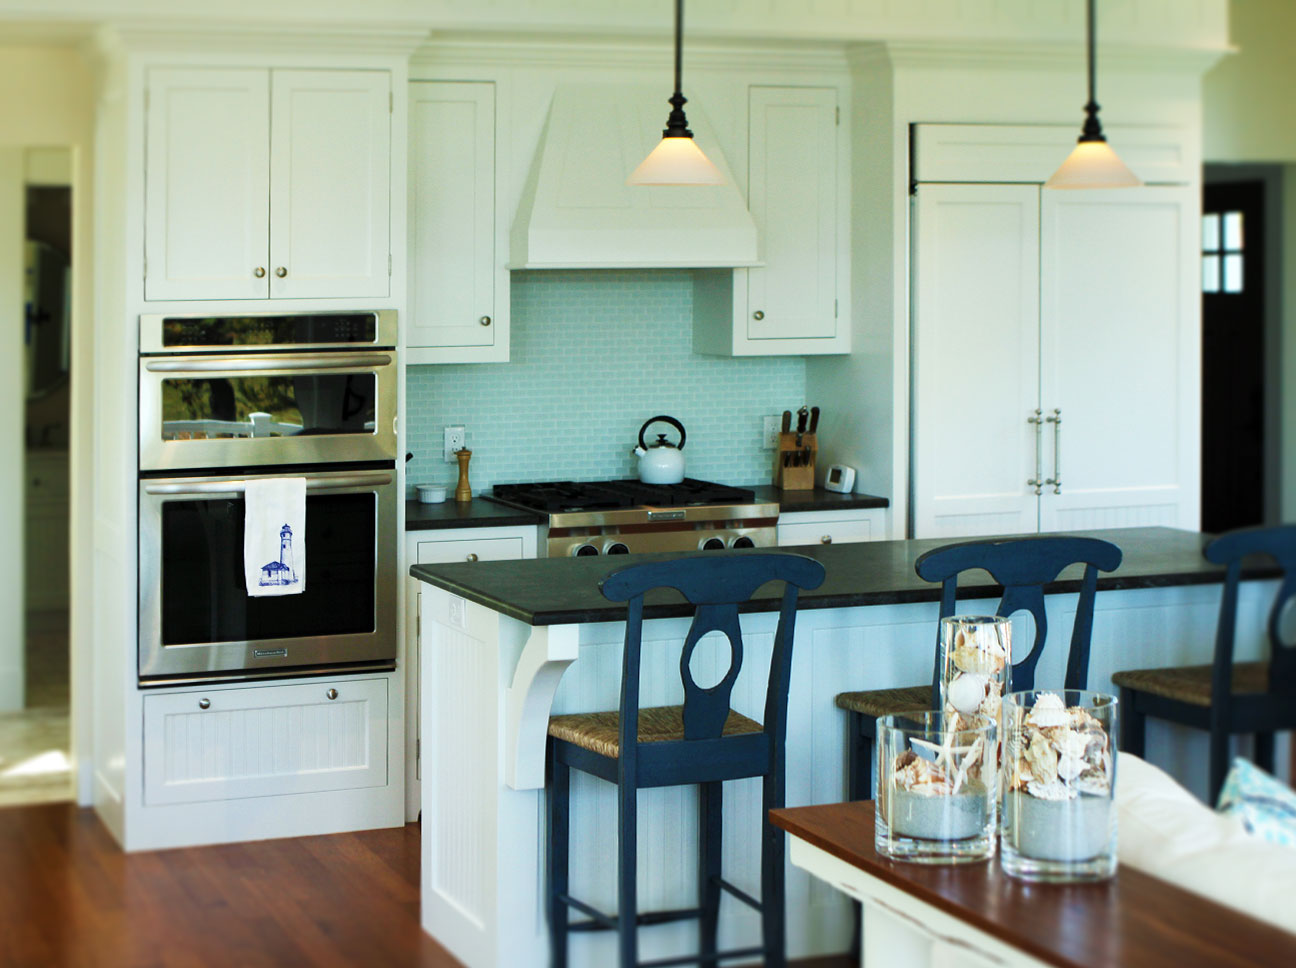 Douston-Kitchens-Oceanside Kitchen